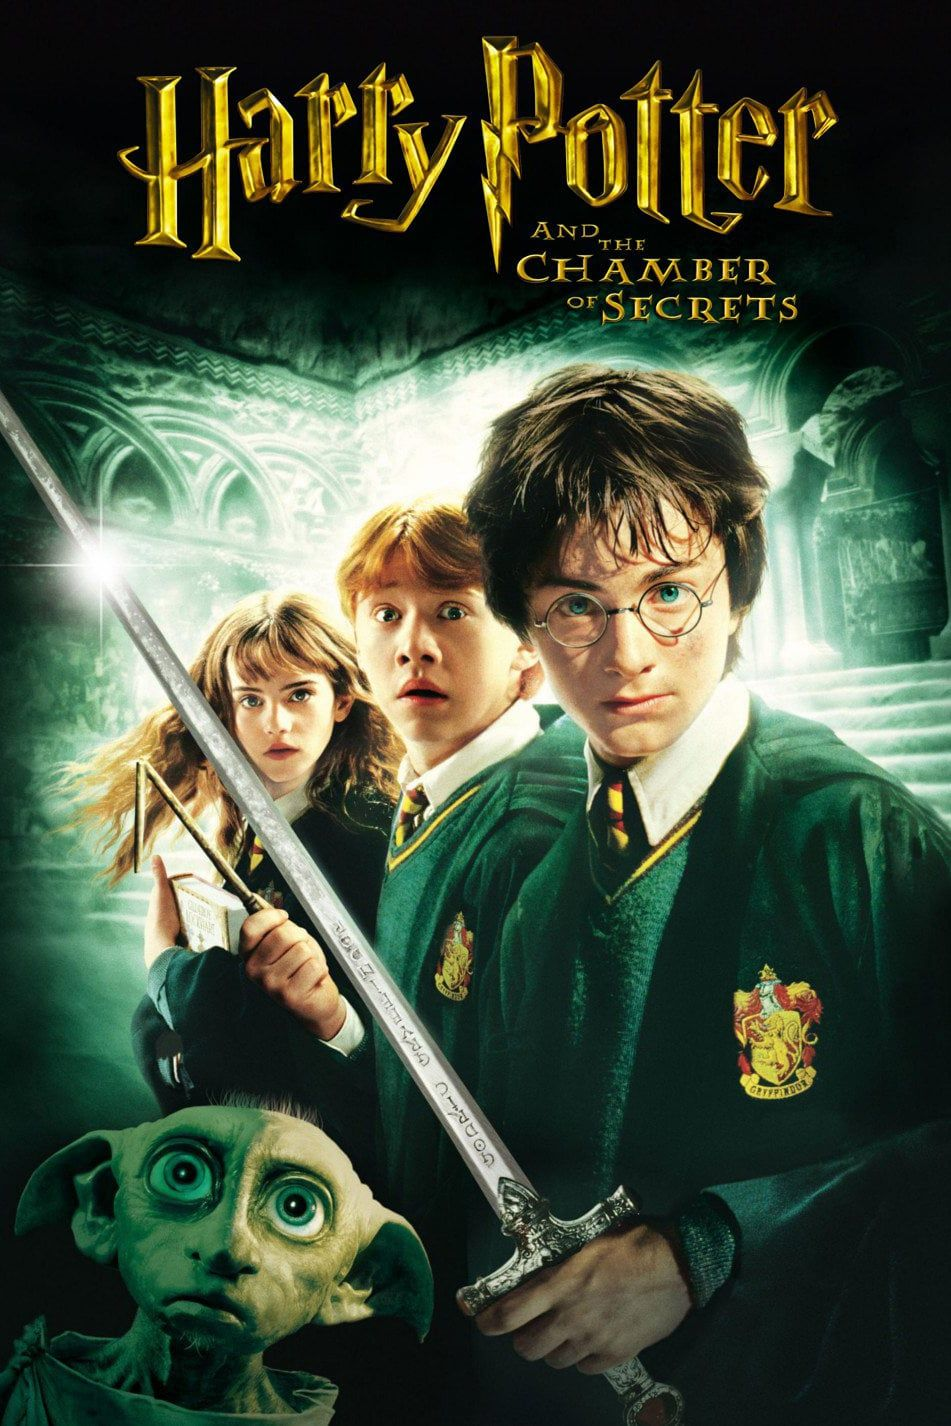 Harry Potter And The Chamber Of Secrets Tamil Dubbed Hd Chamber Of Secrets Harry Potter Full Movies